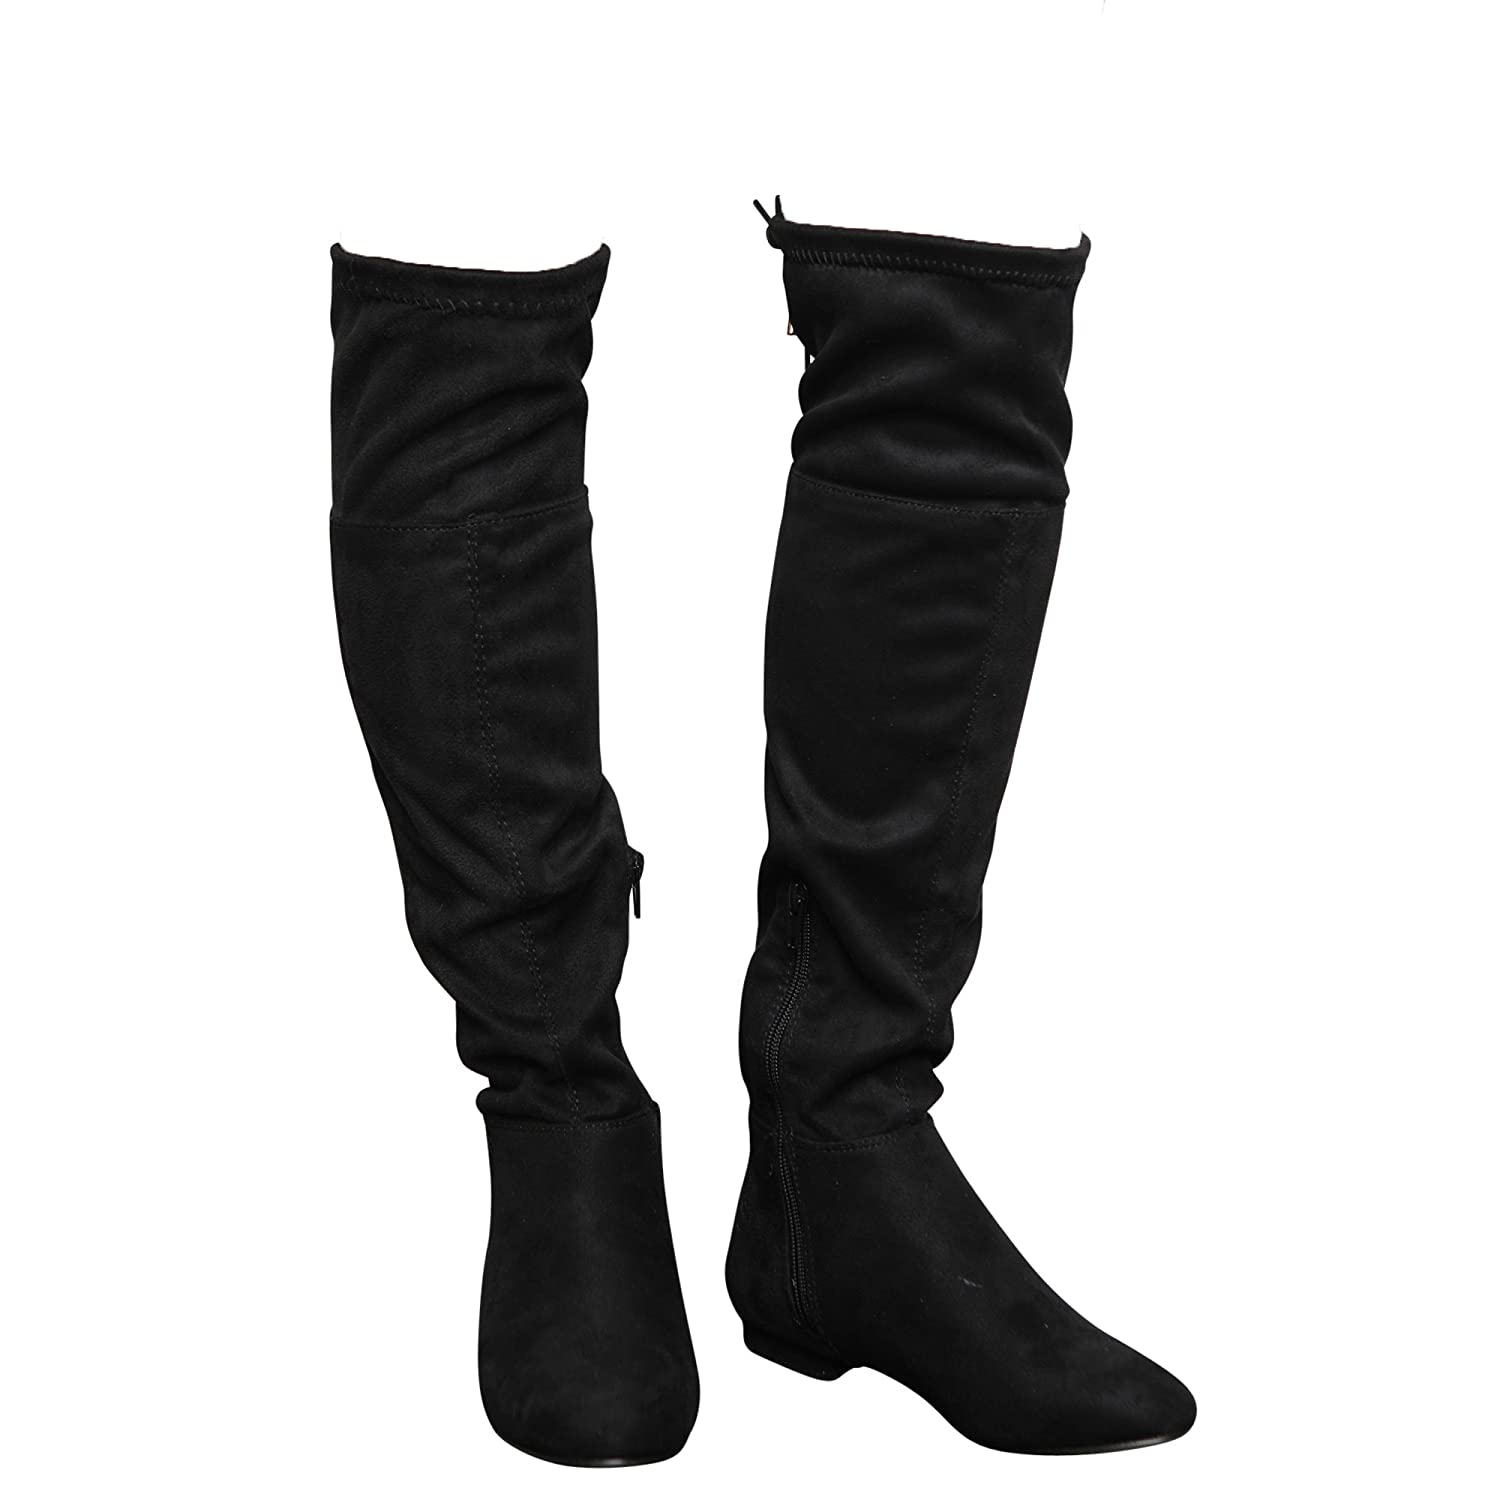 New Women/'s Ladies High Under The Knee Boots Long Low Heel Stretch Girls Shoes